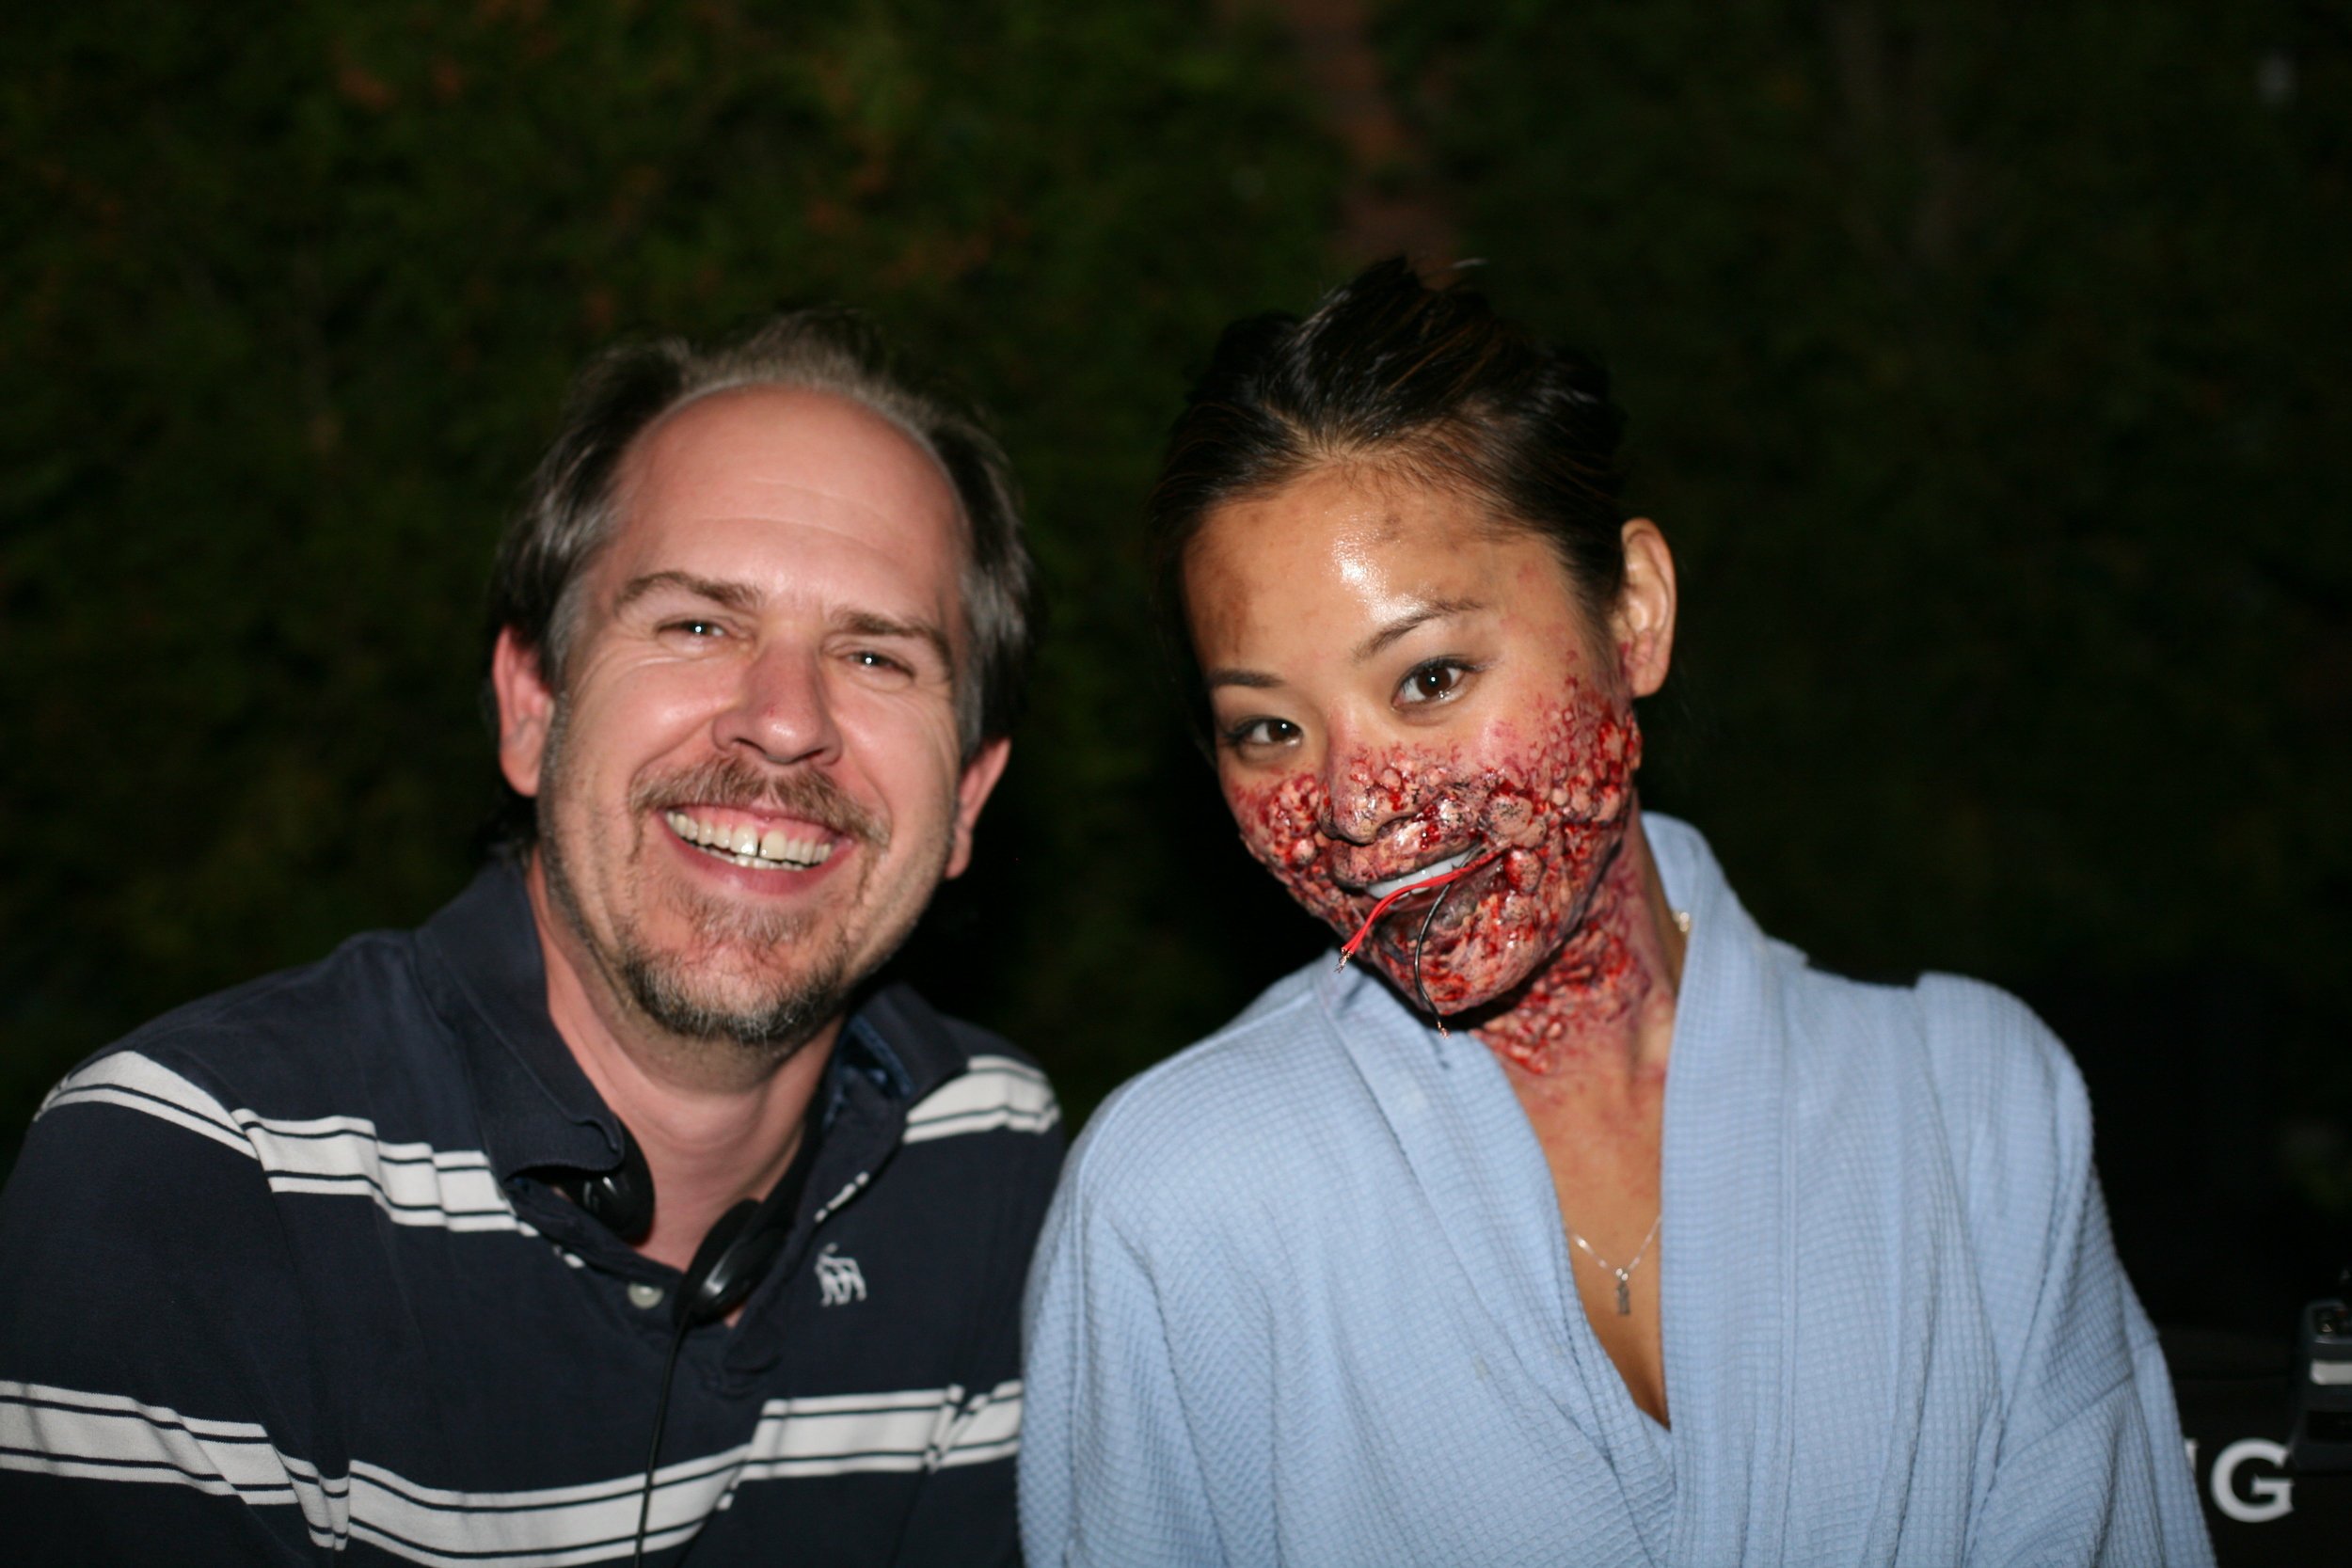 With Jamie Chung in full make-up on Sorority Row